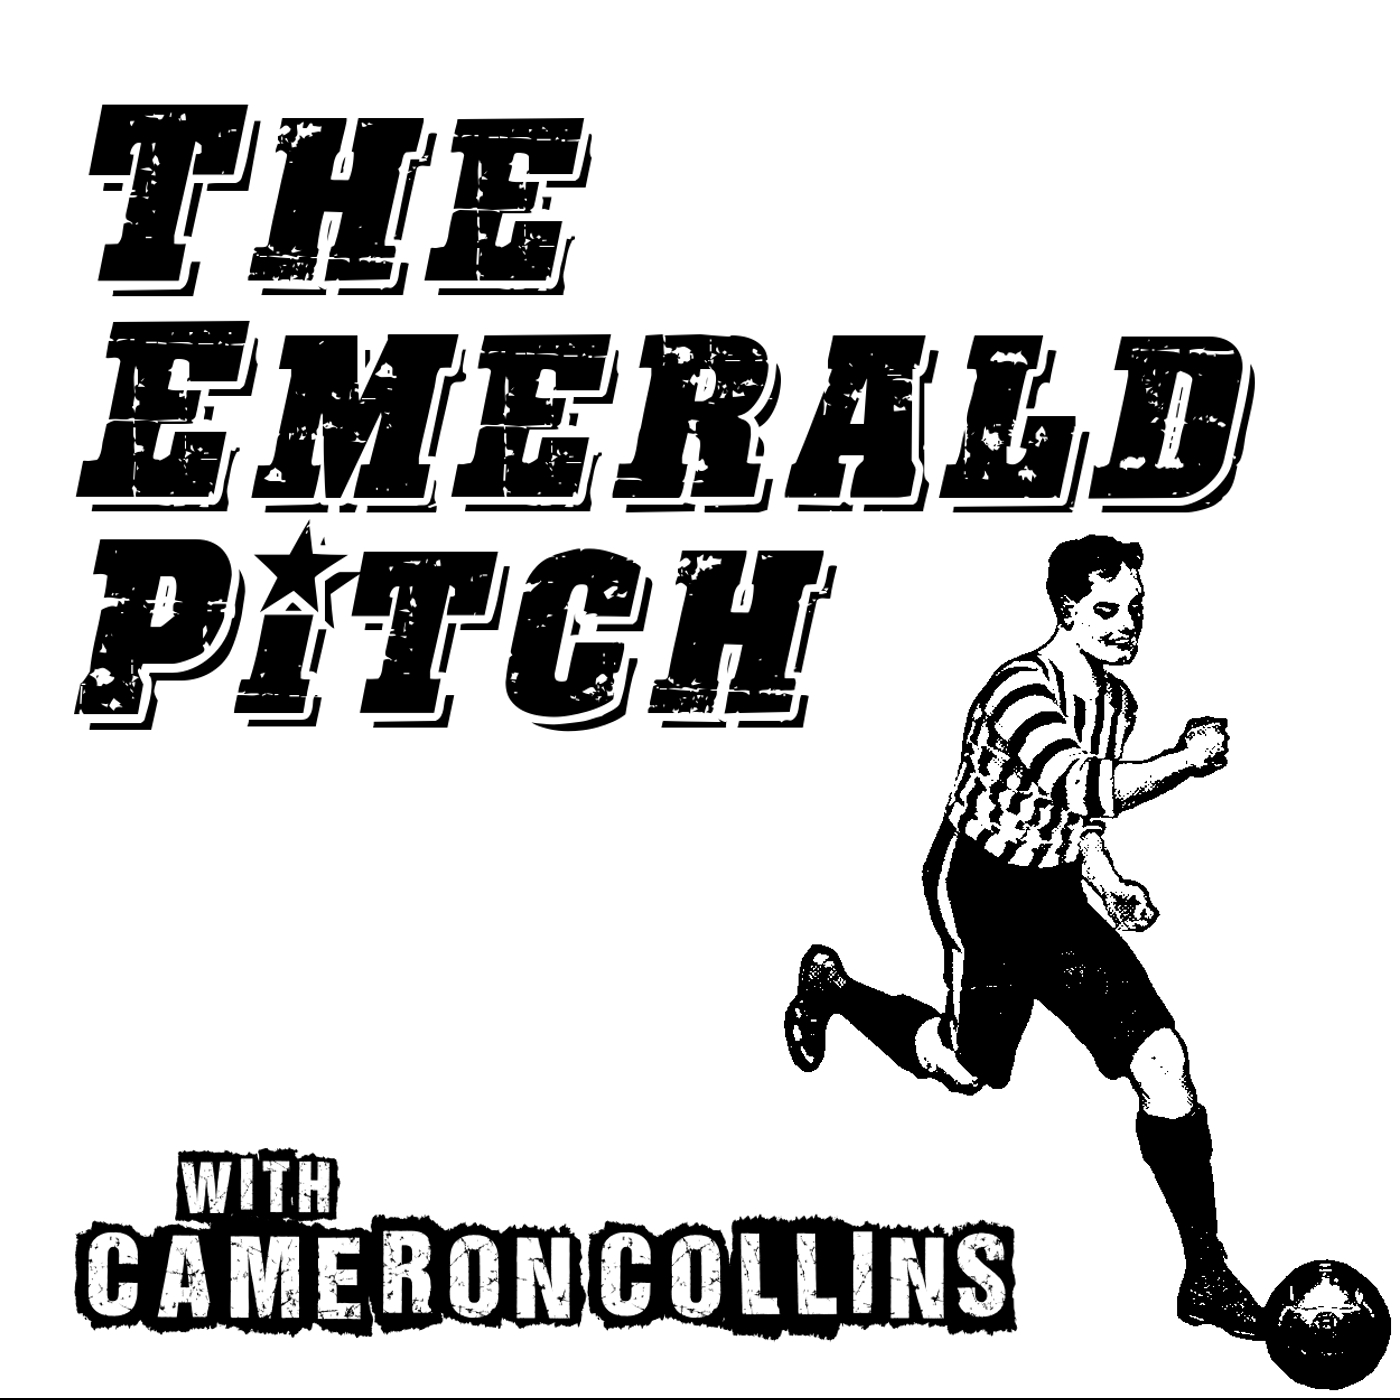 The Emerald Pitch show art